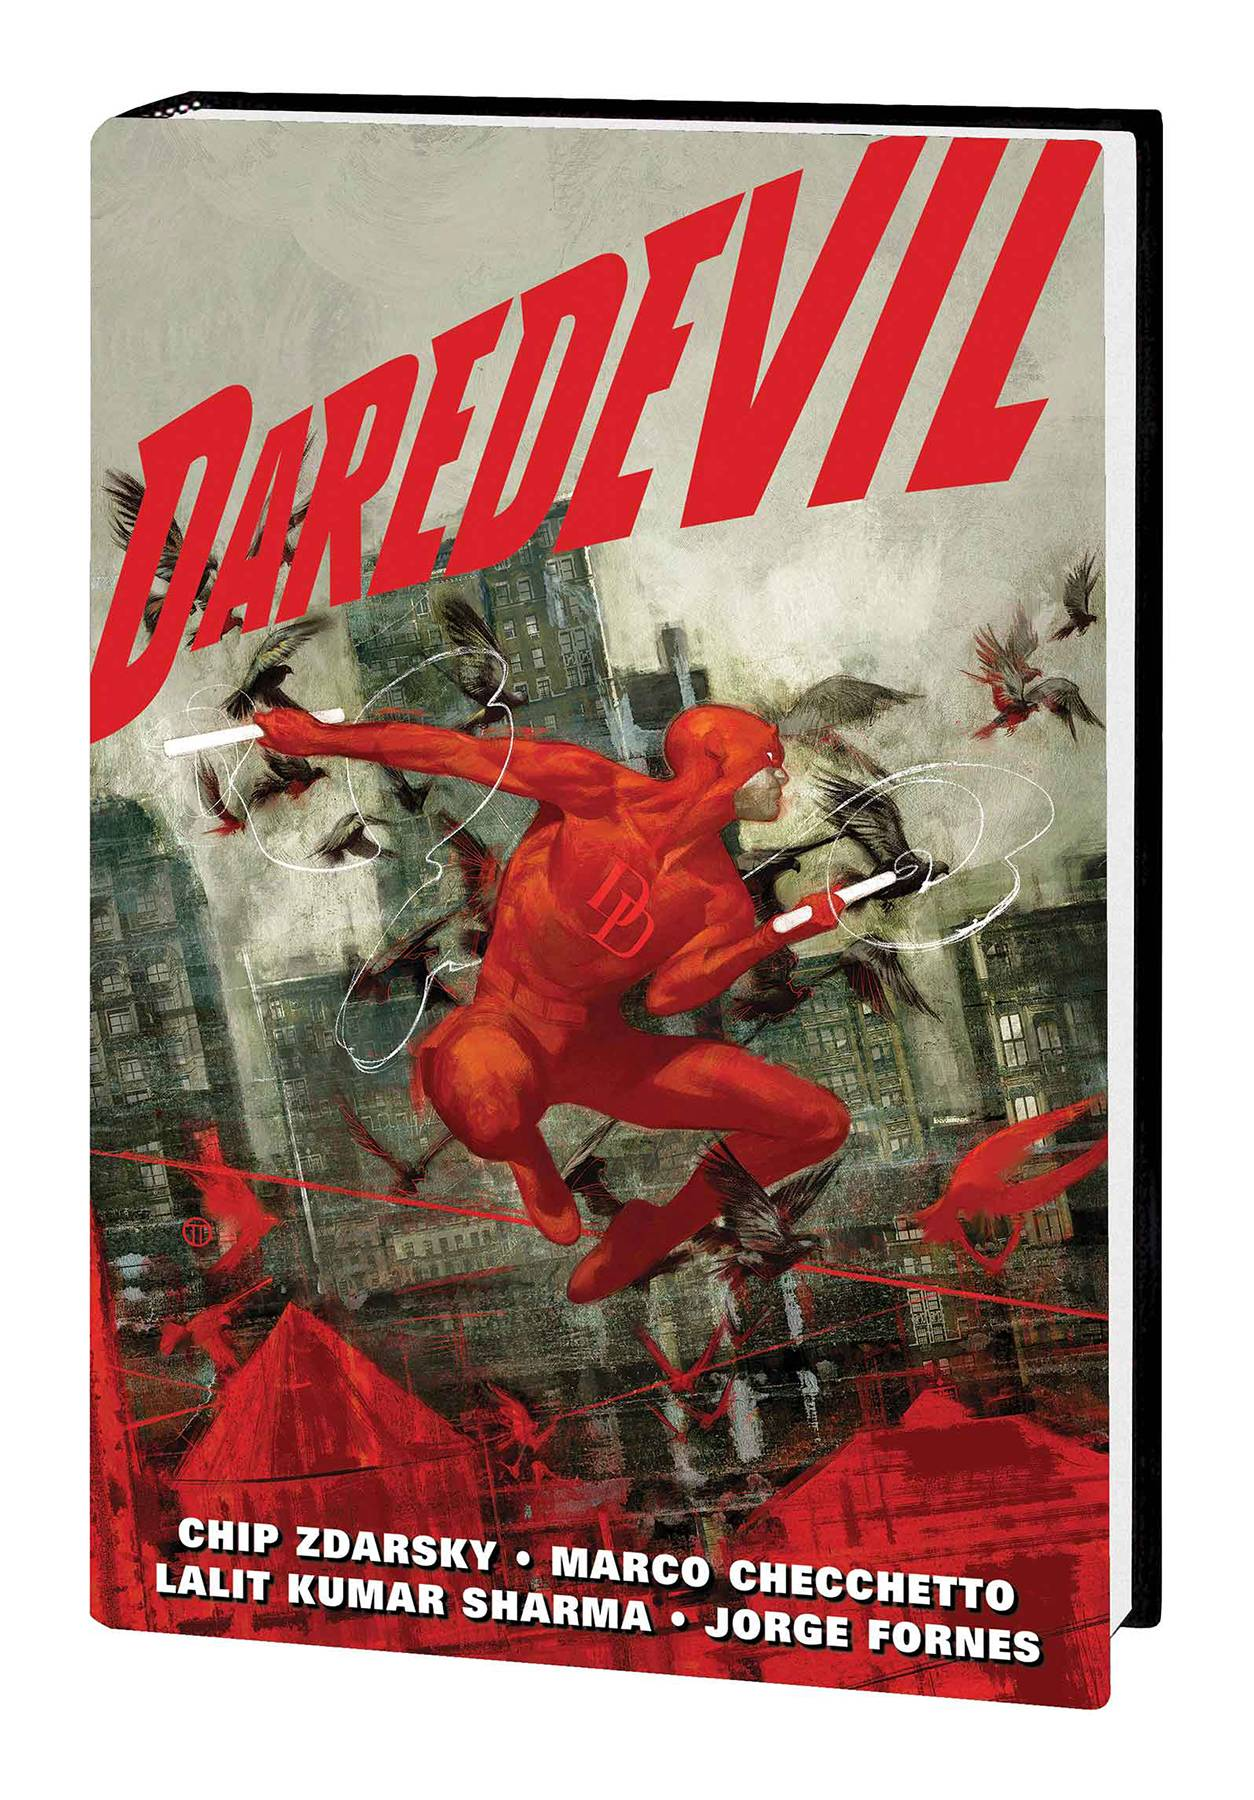 DAREDEVIL BY CHIP ZDARSKY HC 01 TO HEAVEN THROUGH HELL